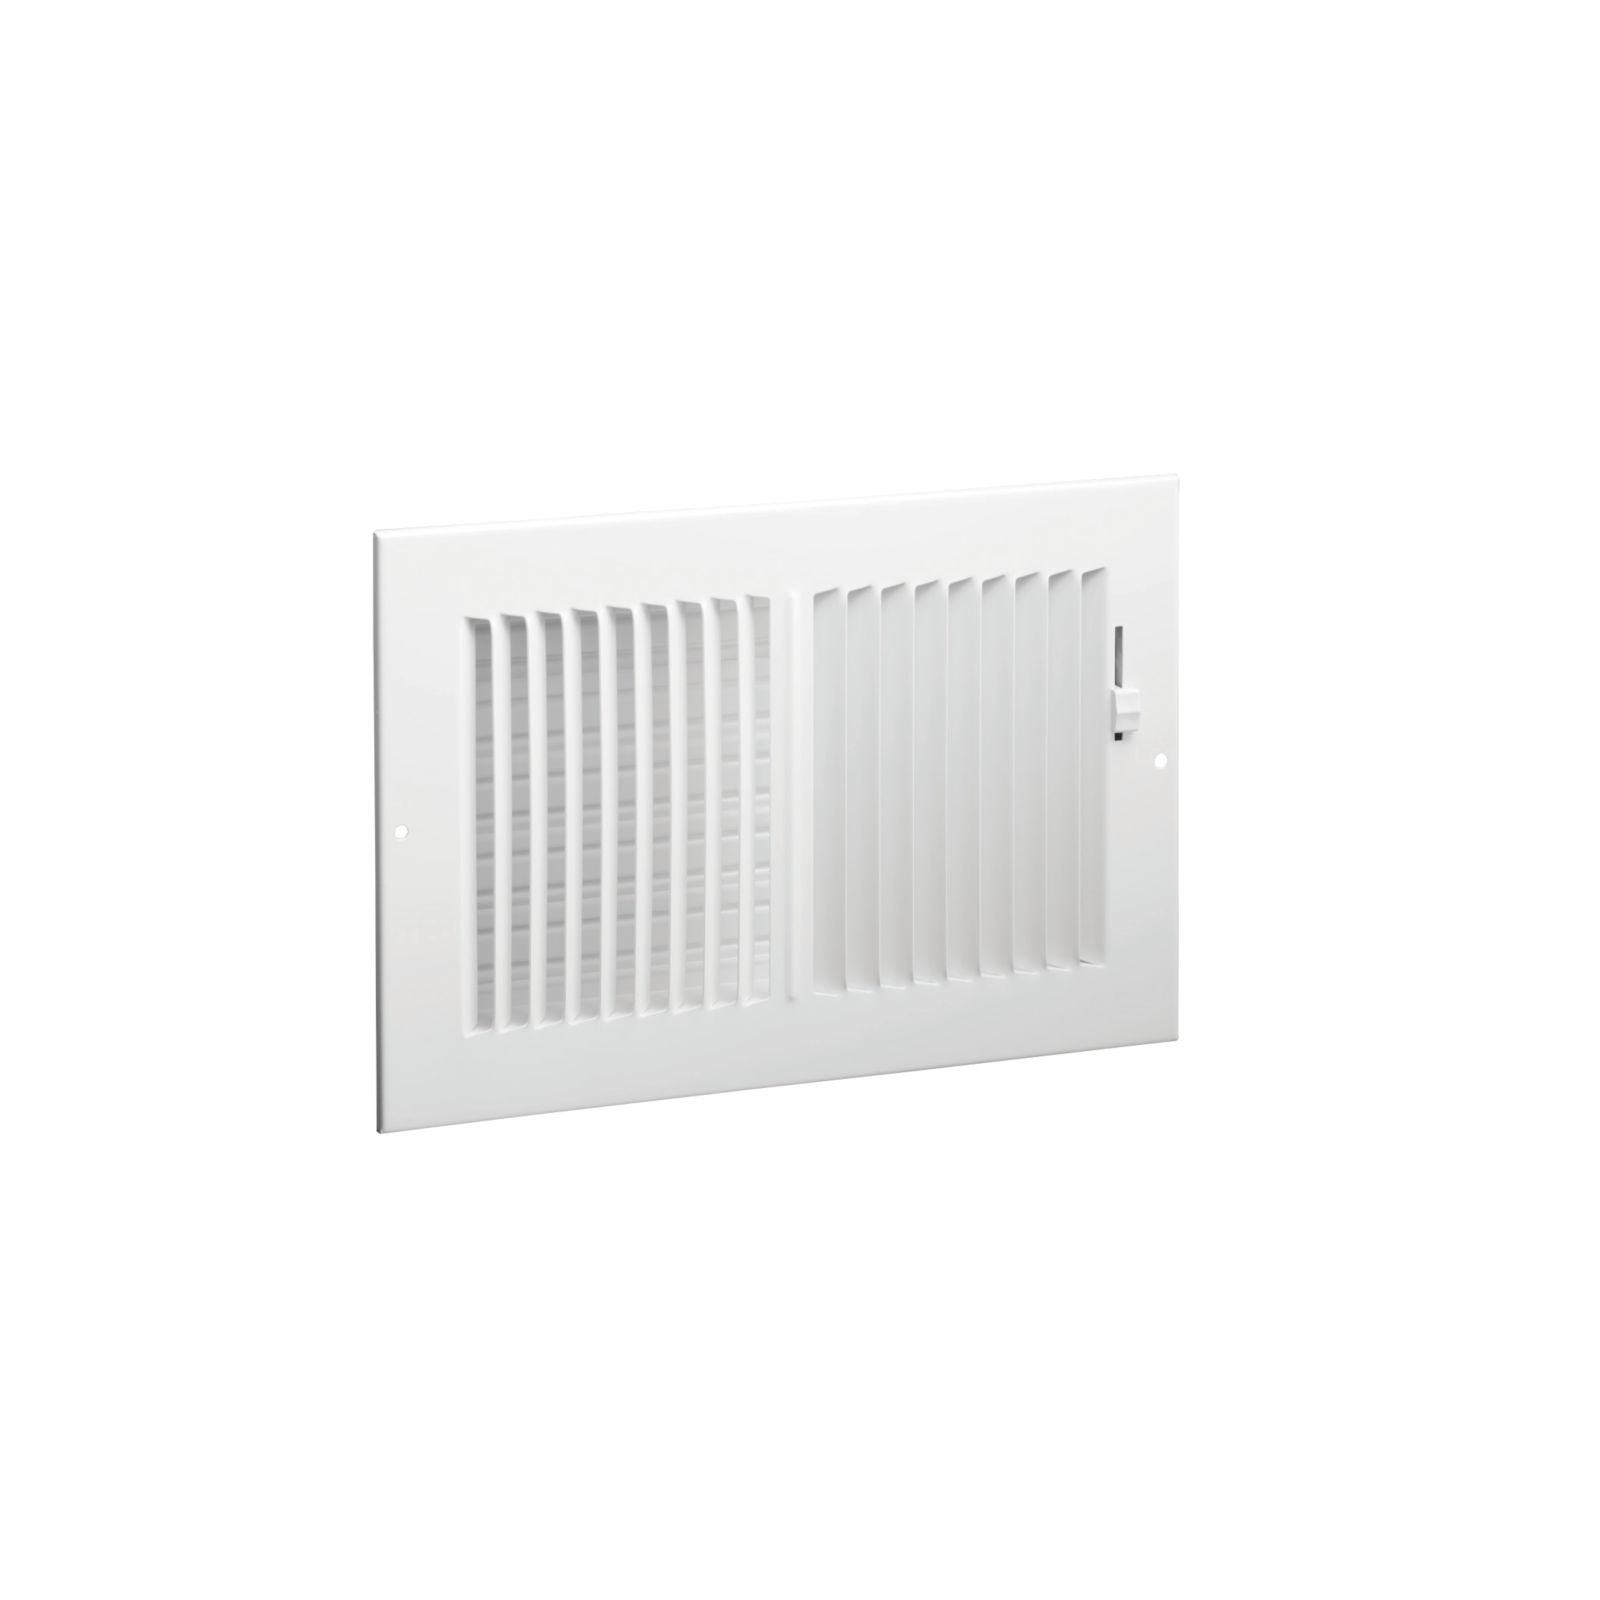 "Hart & Cooley 703910 - #682M Steel 2-Way Sidewall/Ceiling Register, Multi-Shutter Damper with Metal Handle, White, 10"" X 8"""